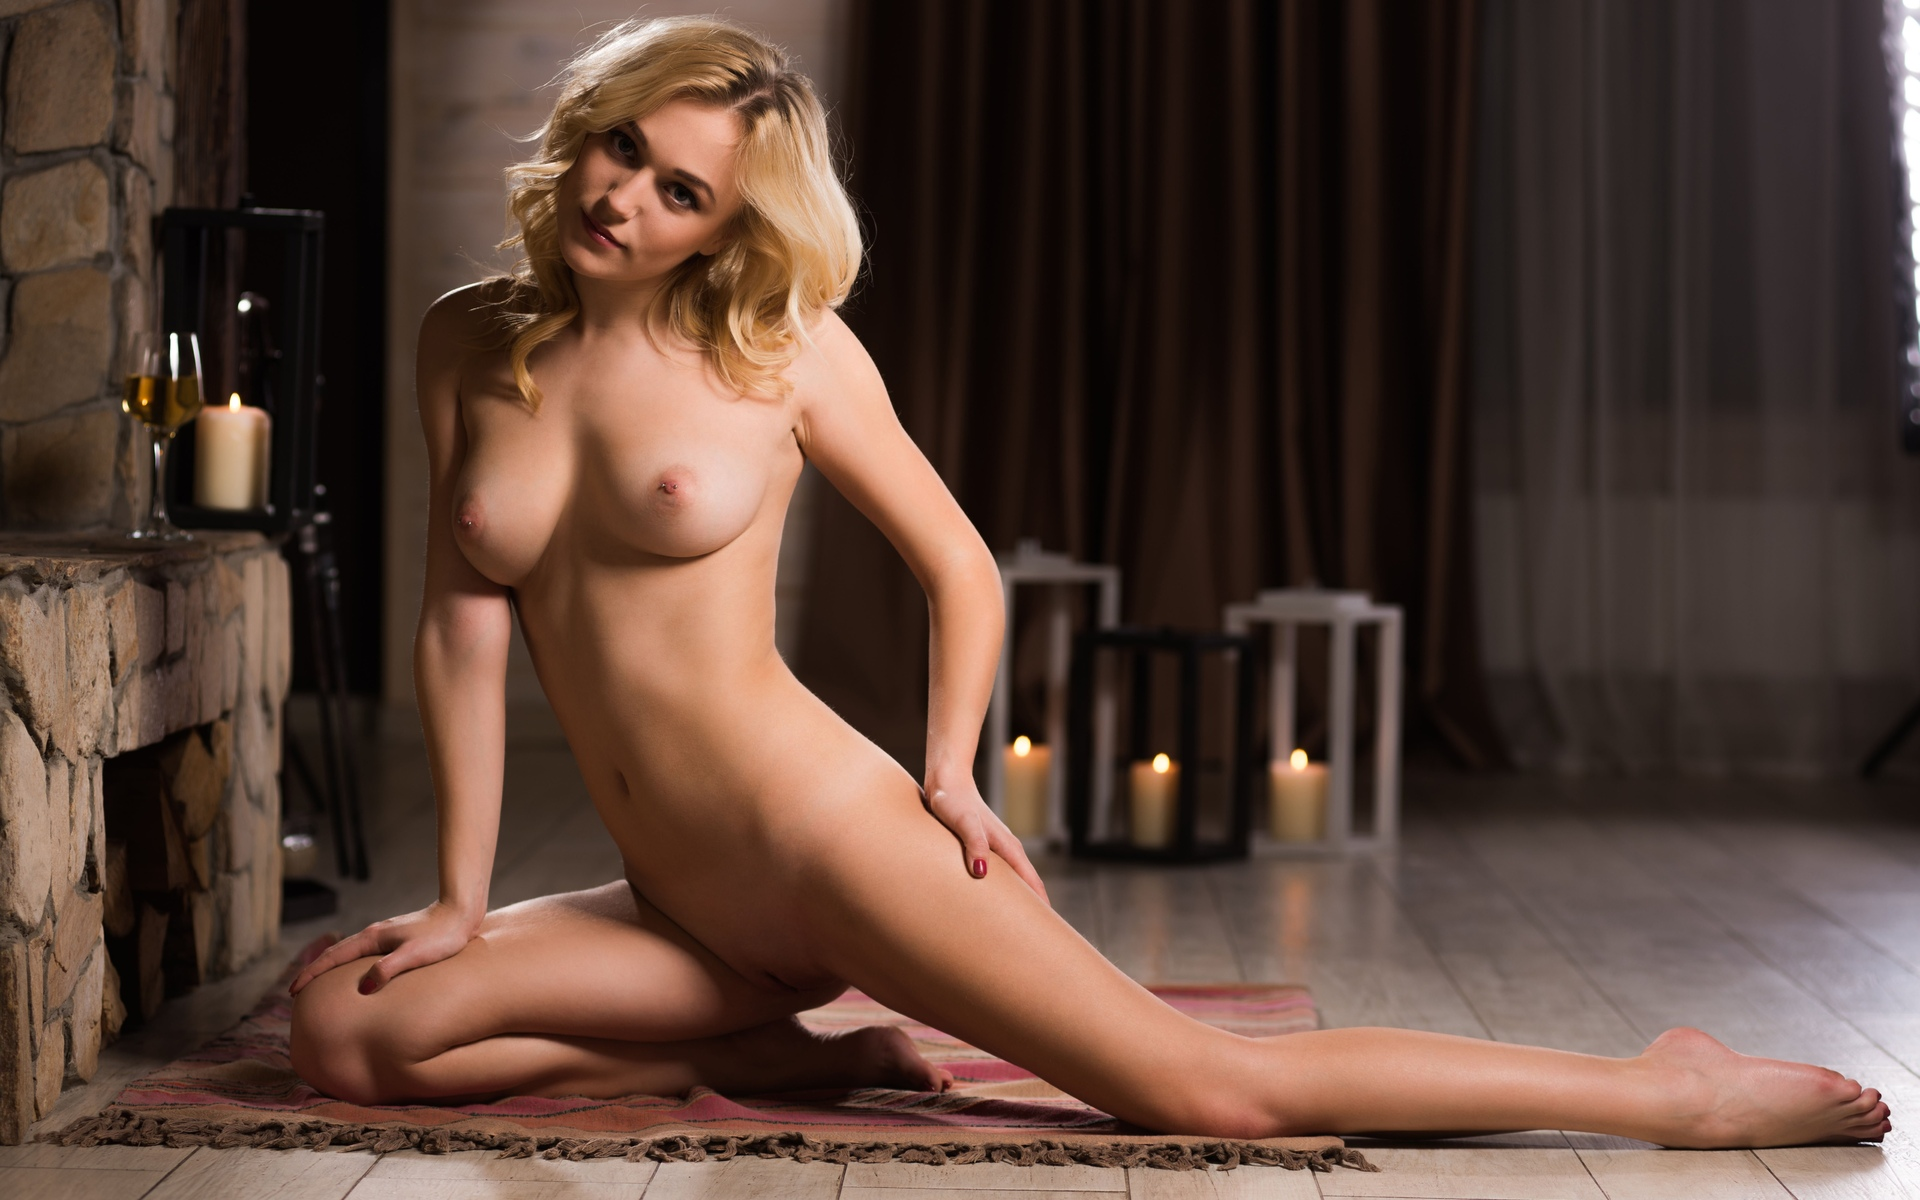 Full hd nude women model, taylor royce sextape